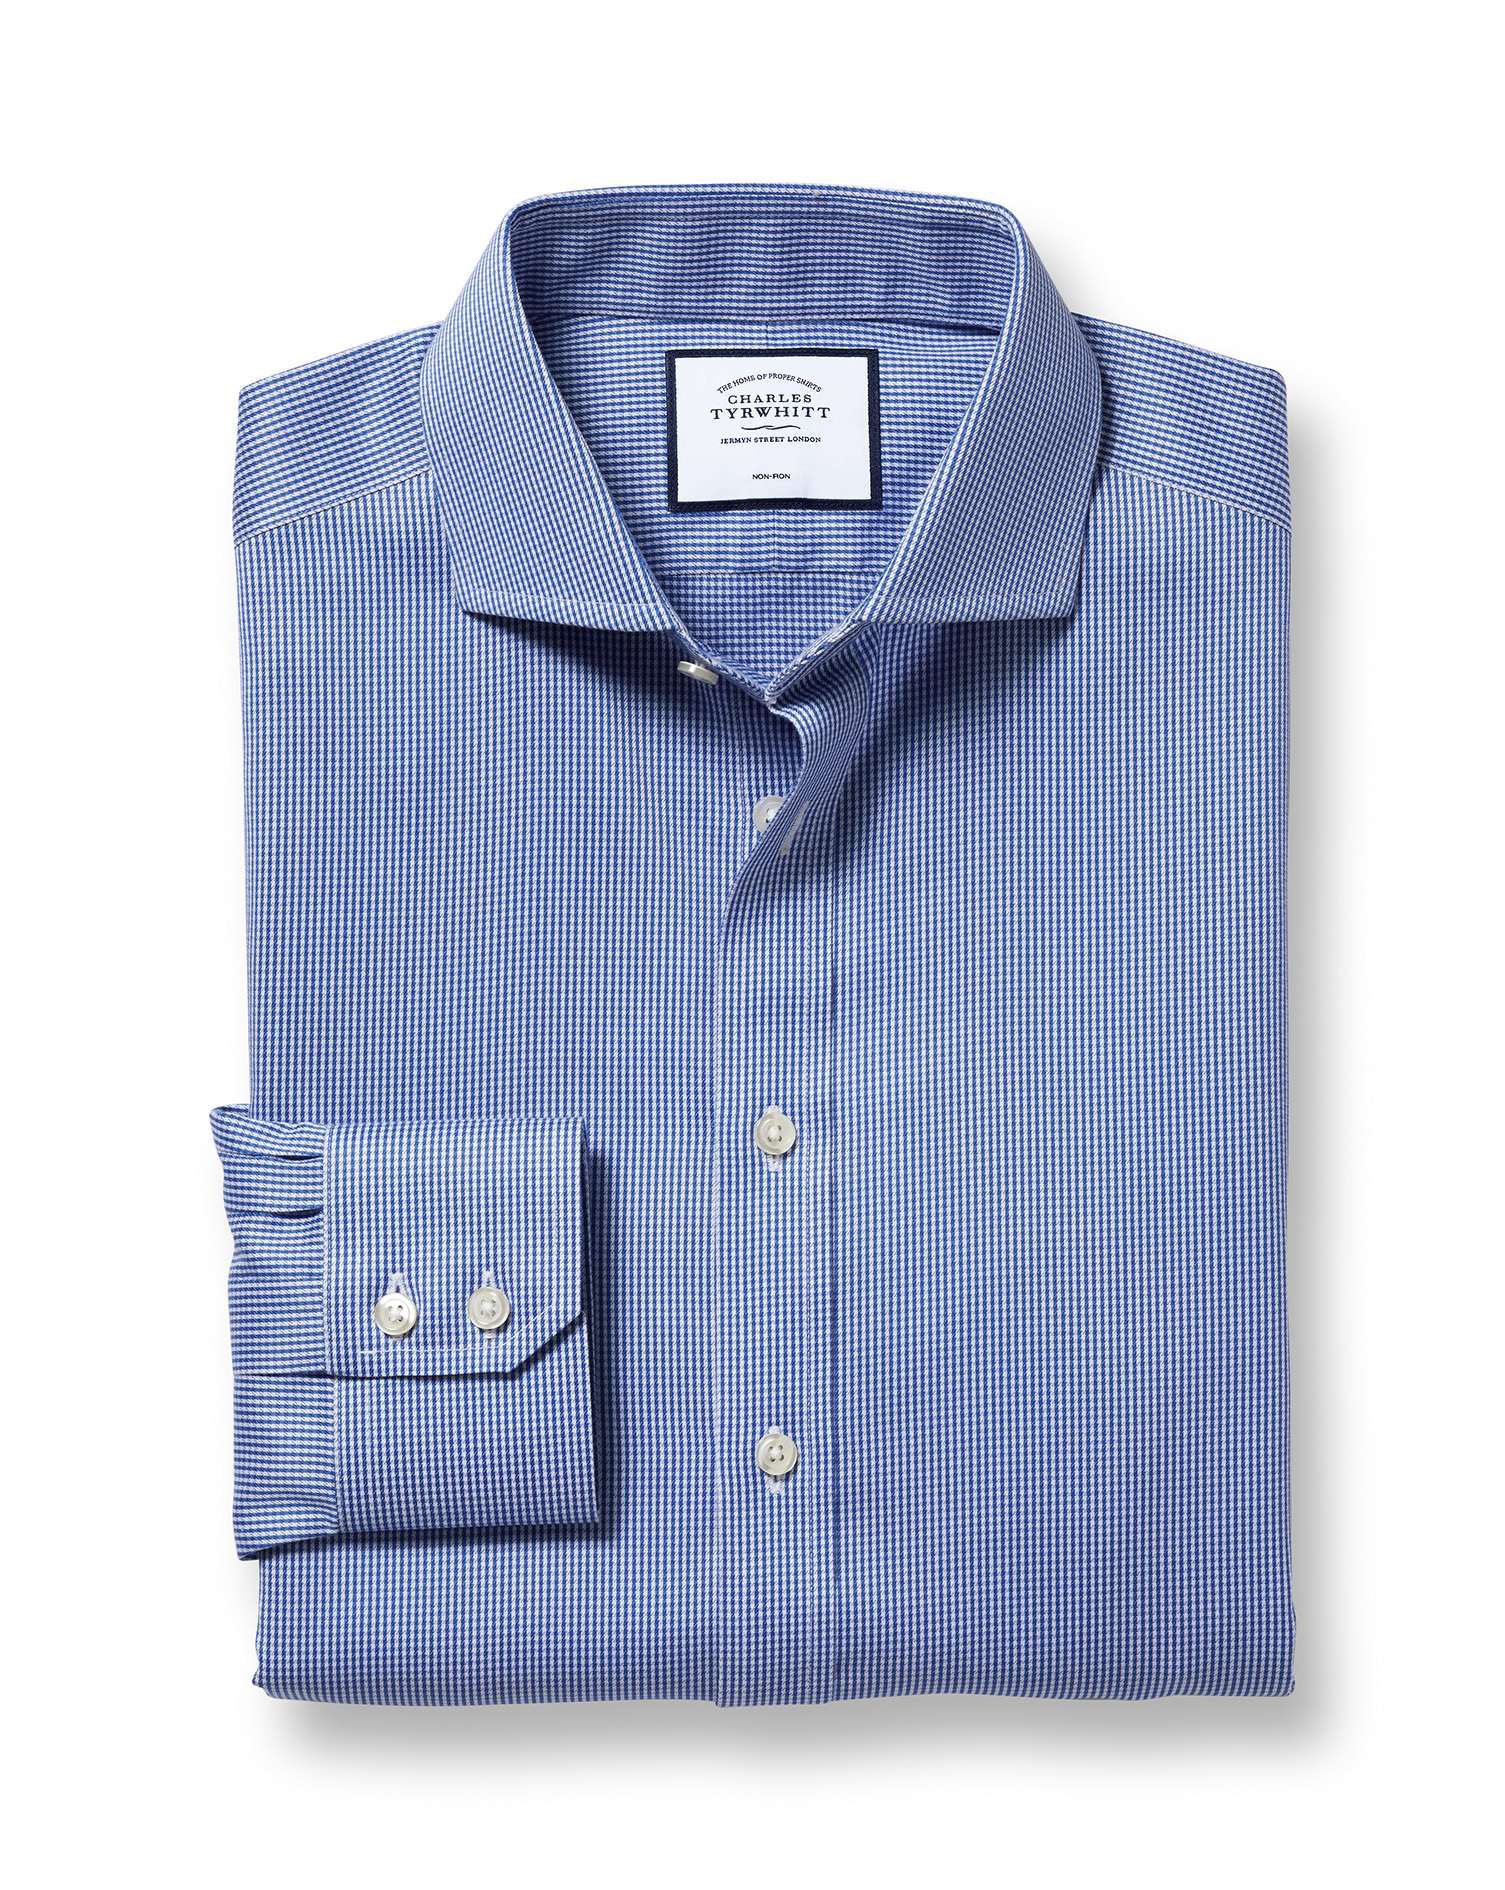 Extra Slim Fit Cutaway Non-Iron Puppytooth Royal Blue Cotton Formal Shirt Double Cuff Size 16.5/34 b